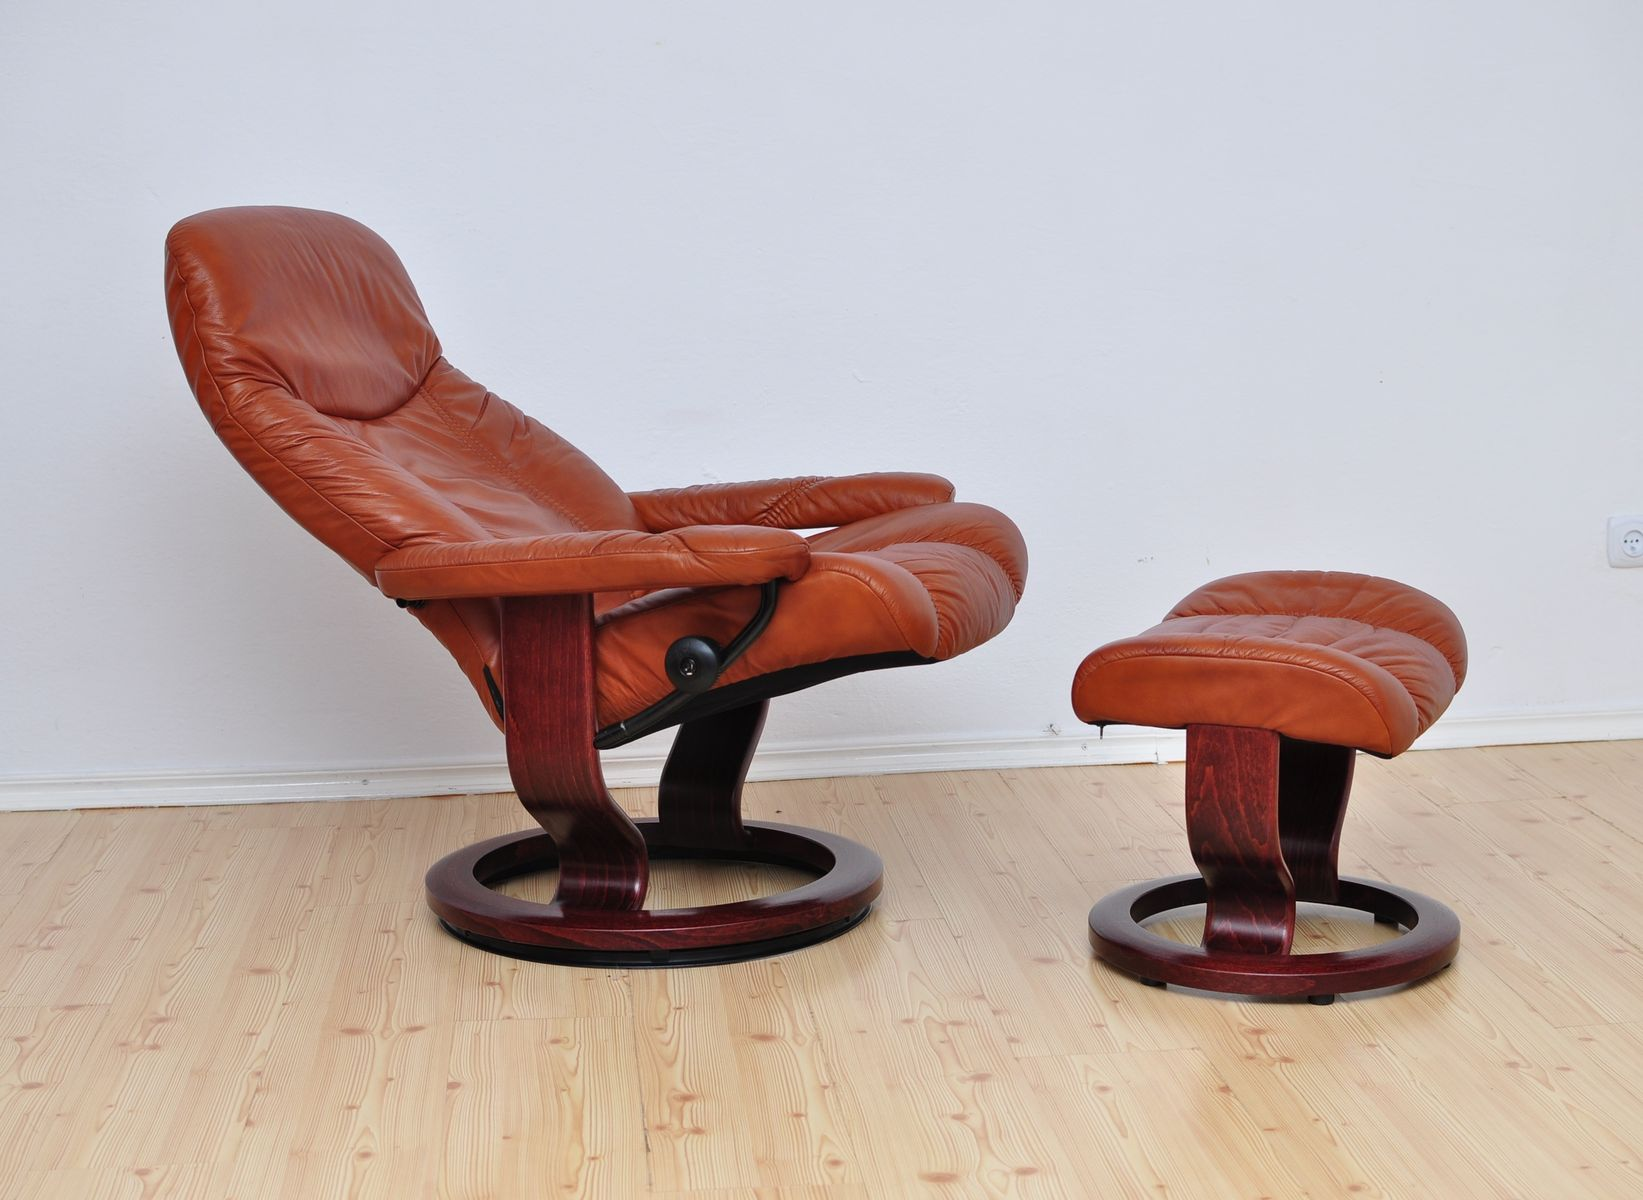 Consul Lounge Chair & Ottoman from Stressless Ekornes 1980s for